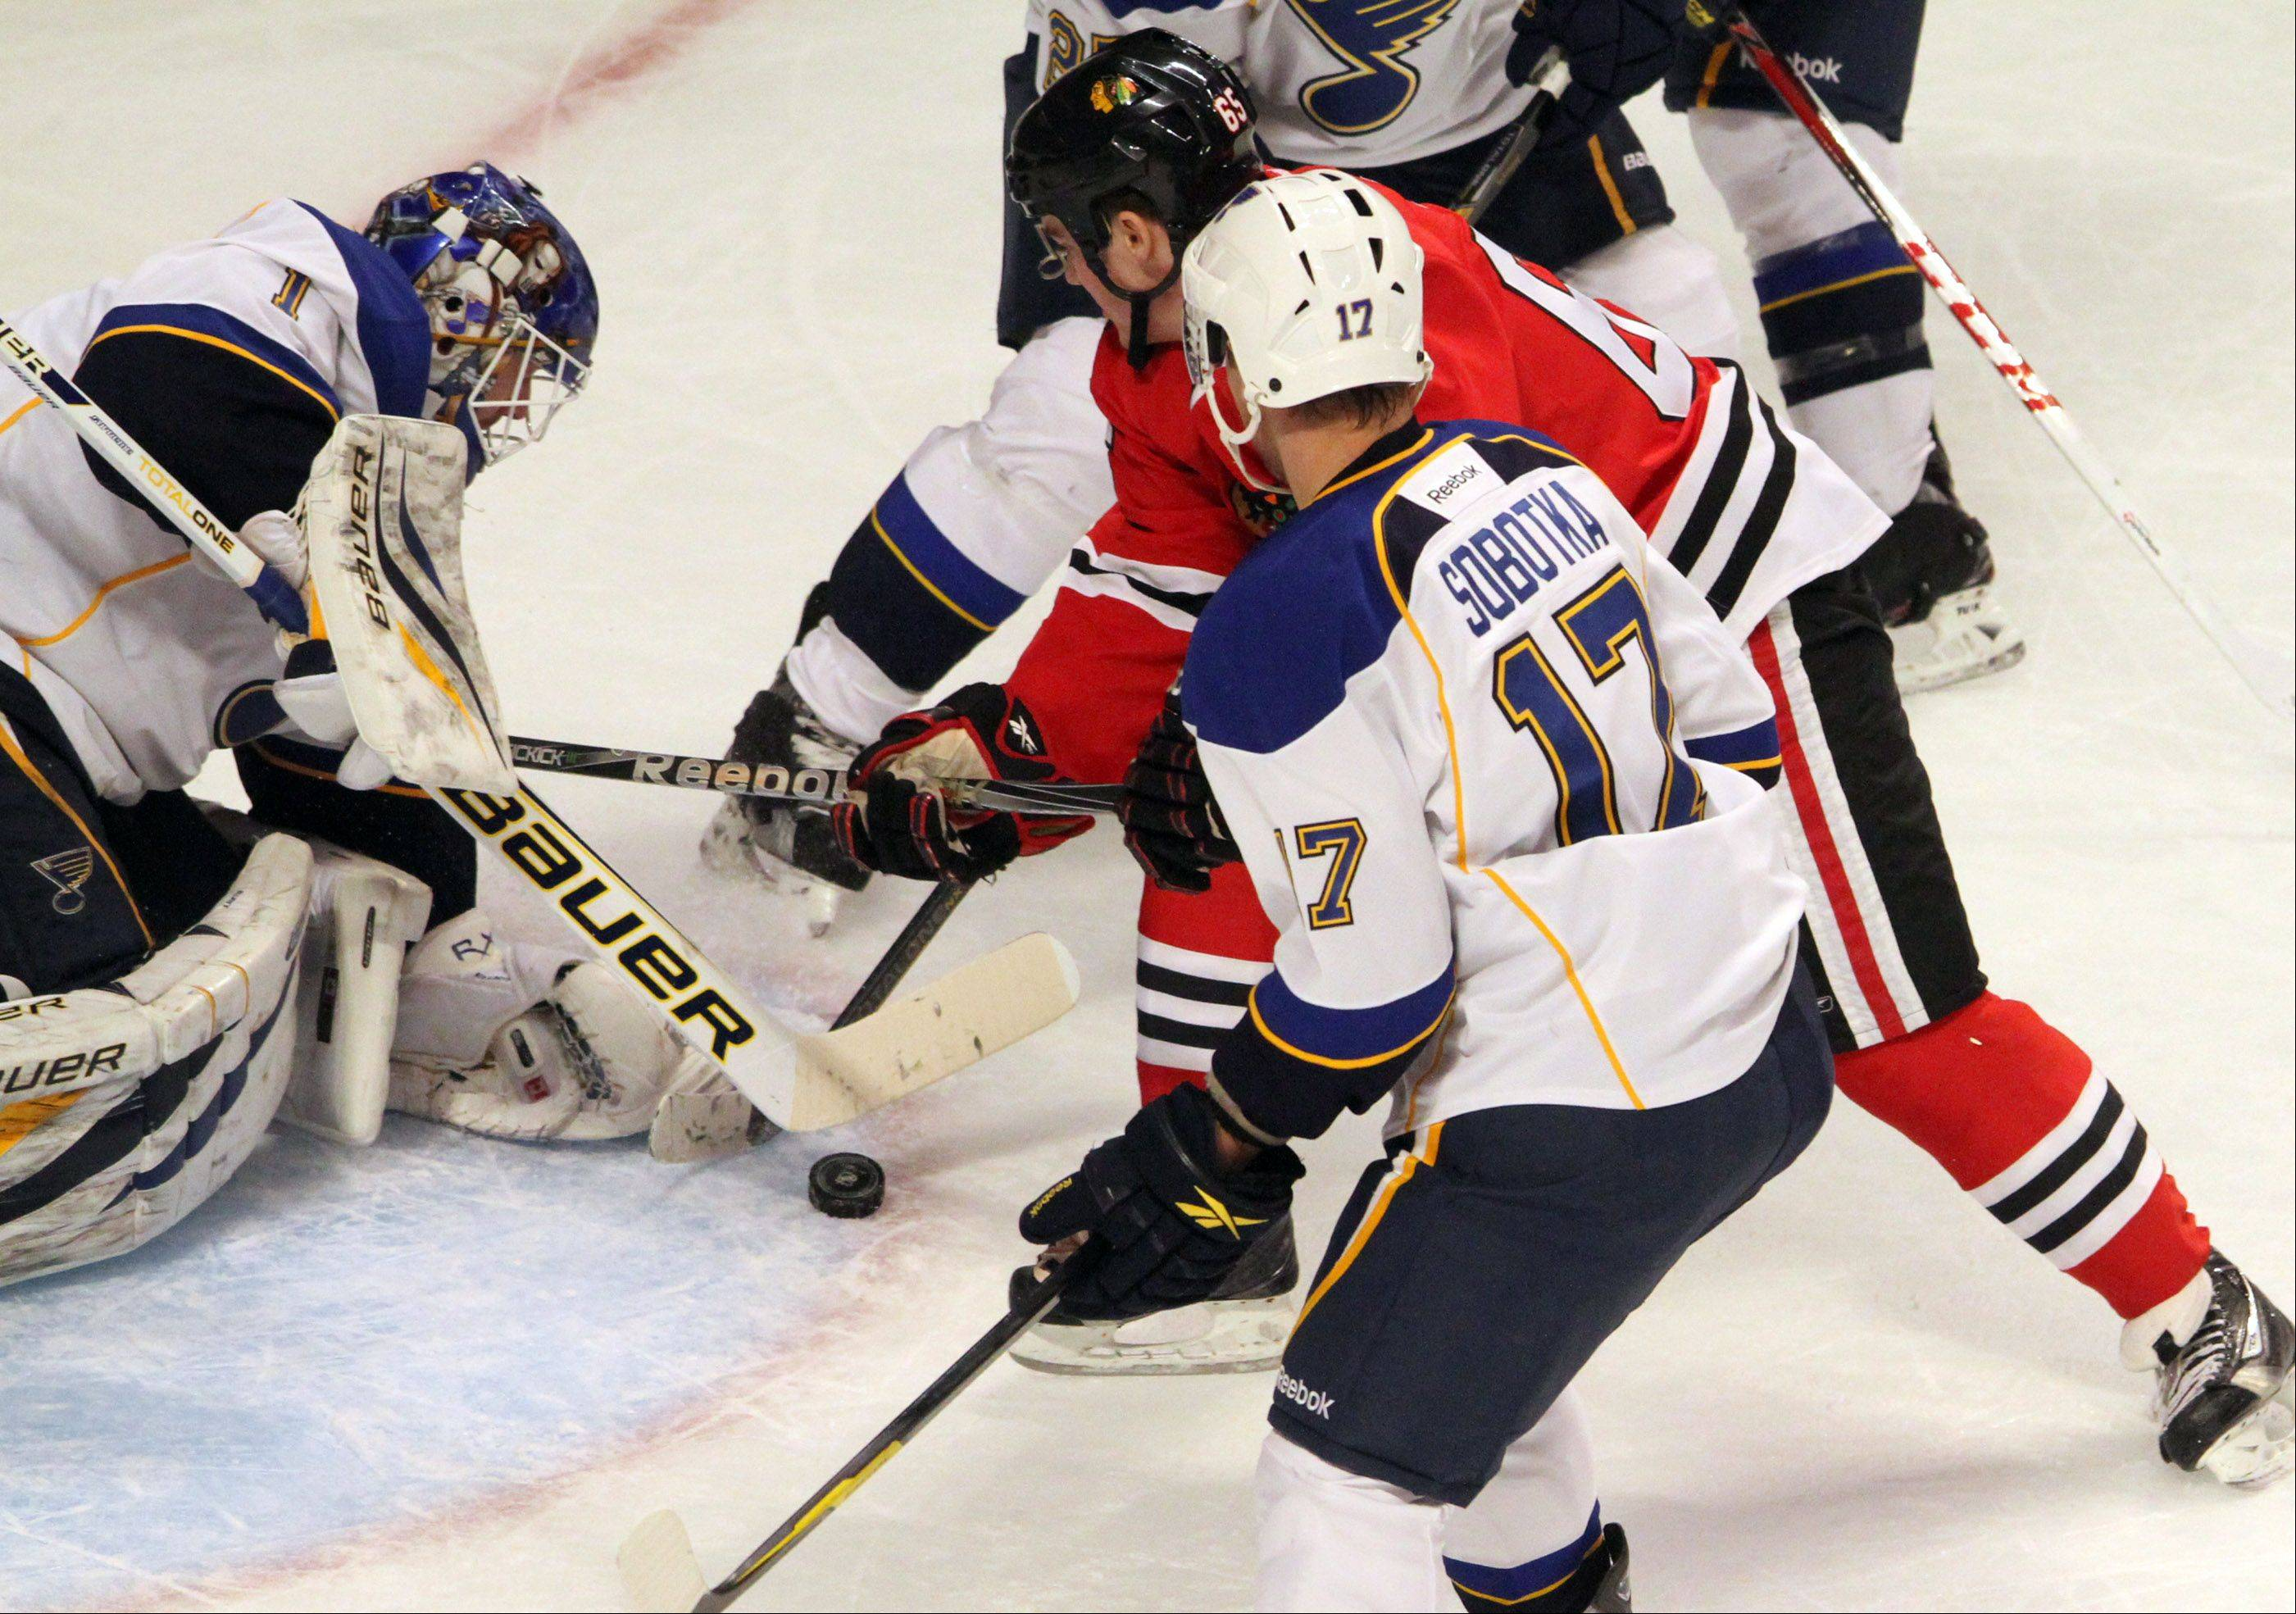 St. Louis Blues goalie Brian Elliott blocks a shot by Chicago Blackhawks left wing Viktor Stalberg during the second period.